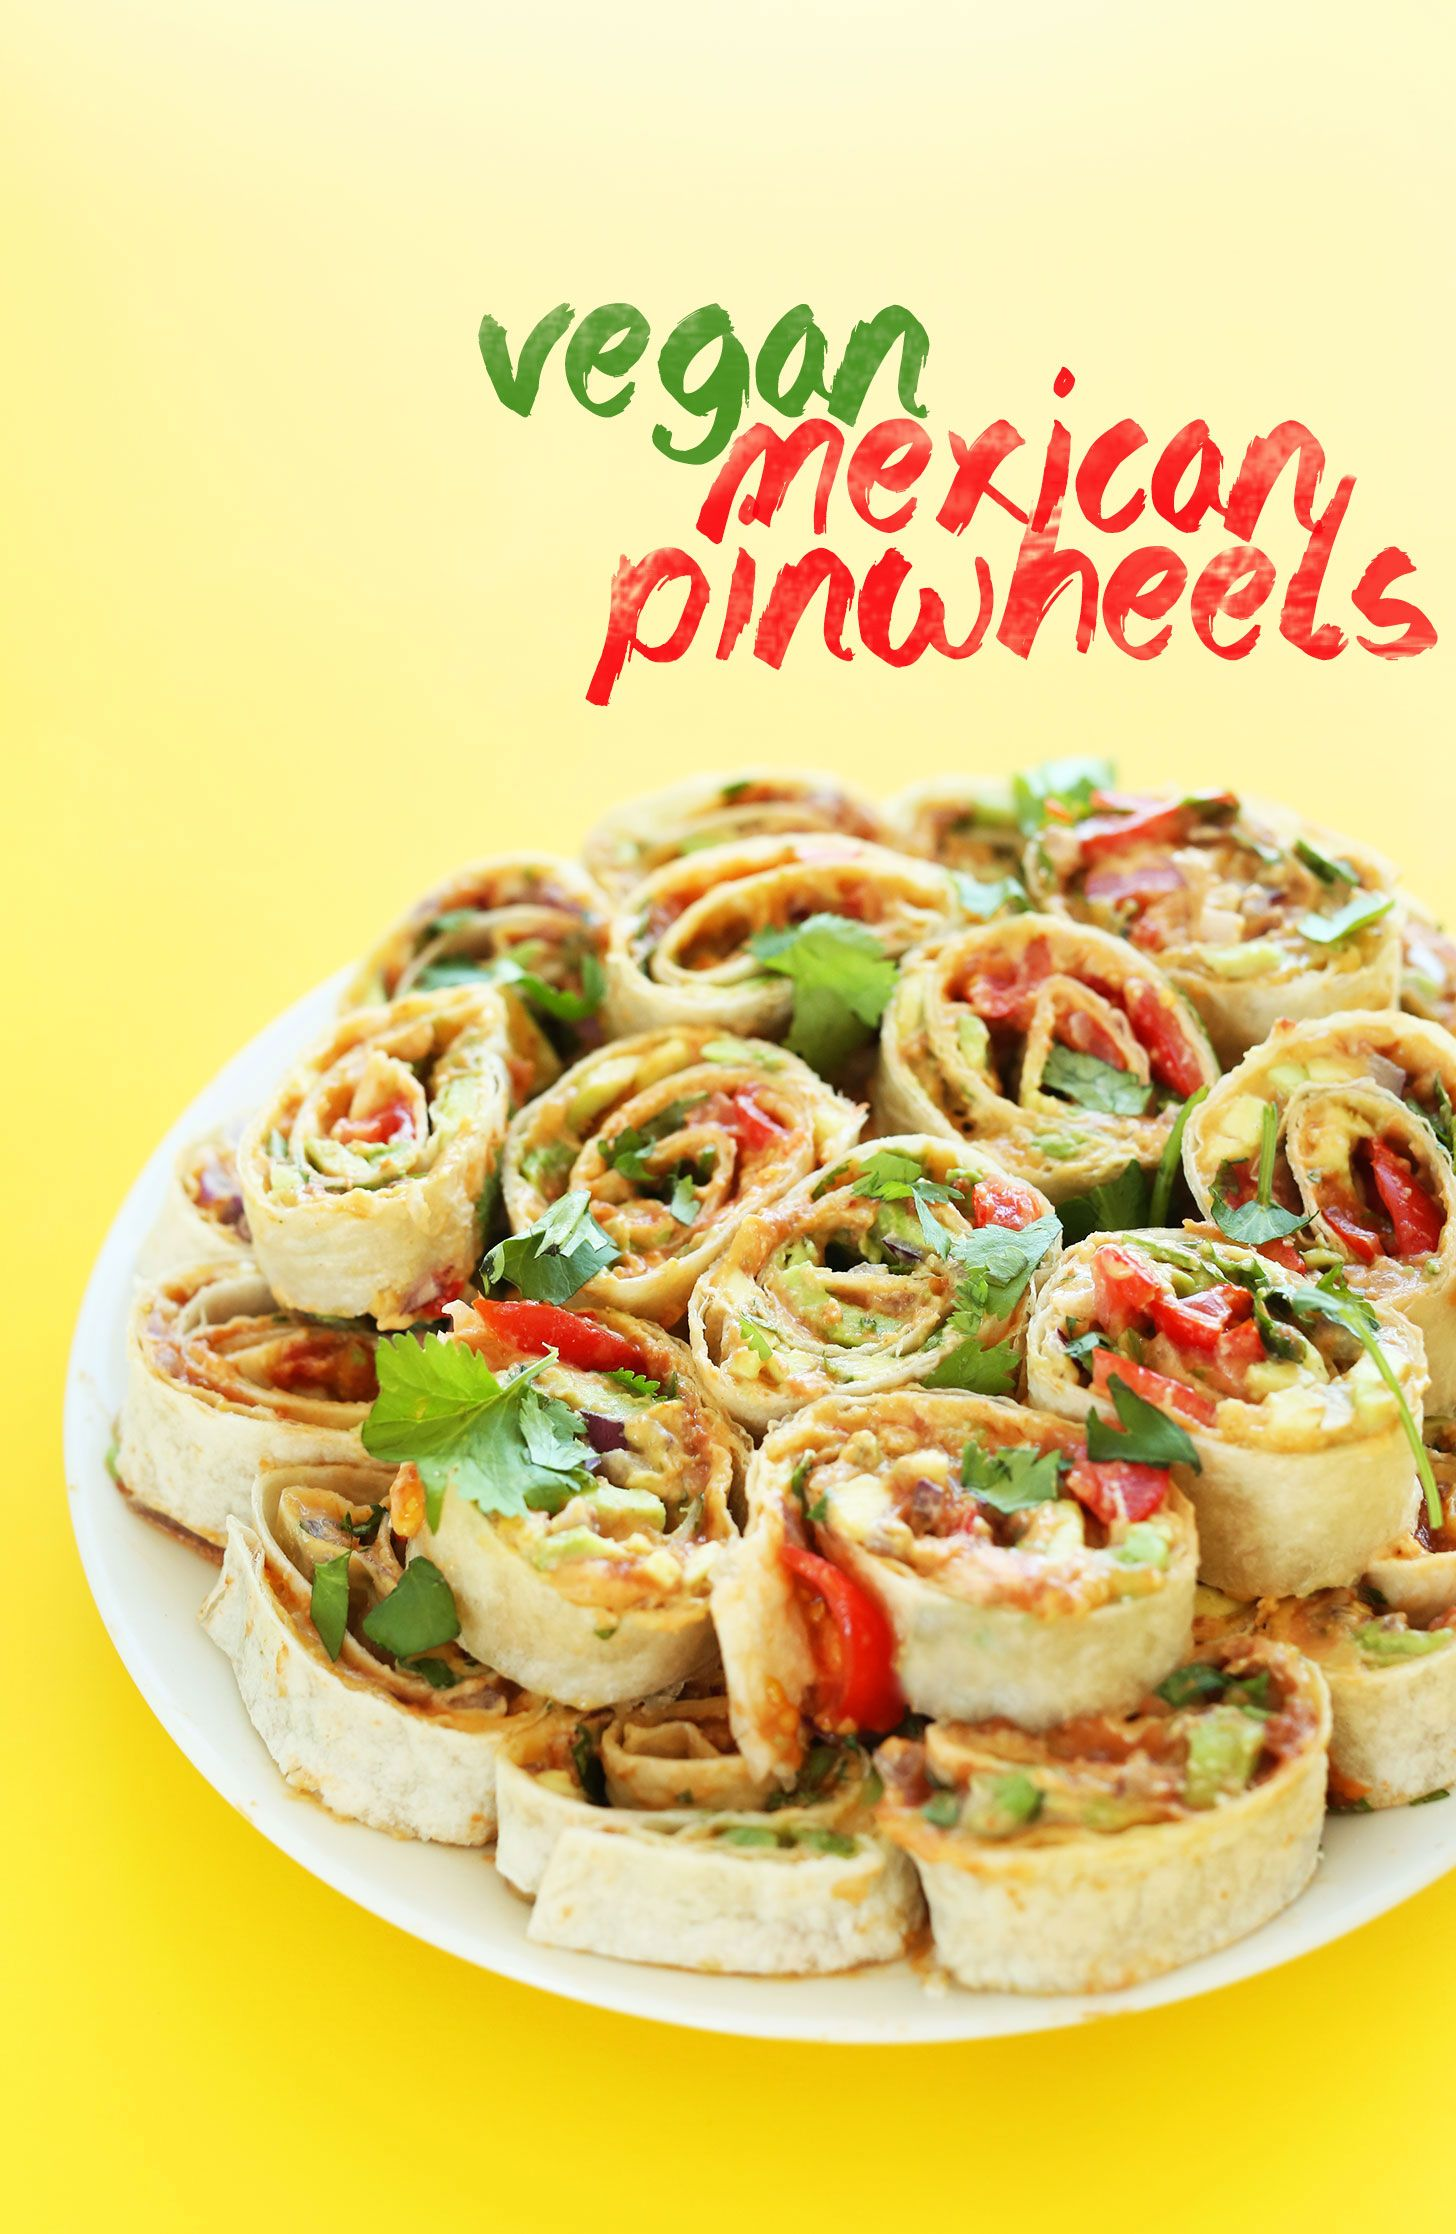 AMAZING Mexican Pinwheels with Refried Beans, Avocado, Onion, Cilantro and Tomato! Such a delicious #vegan friendly finger food! #recipe #healthy #snack #mexican #minimalistbaker